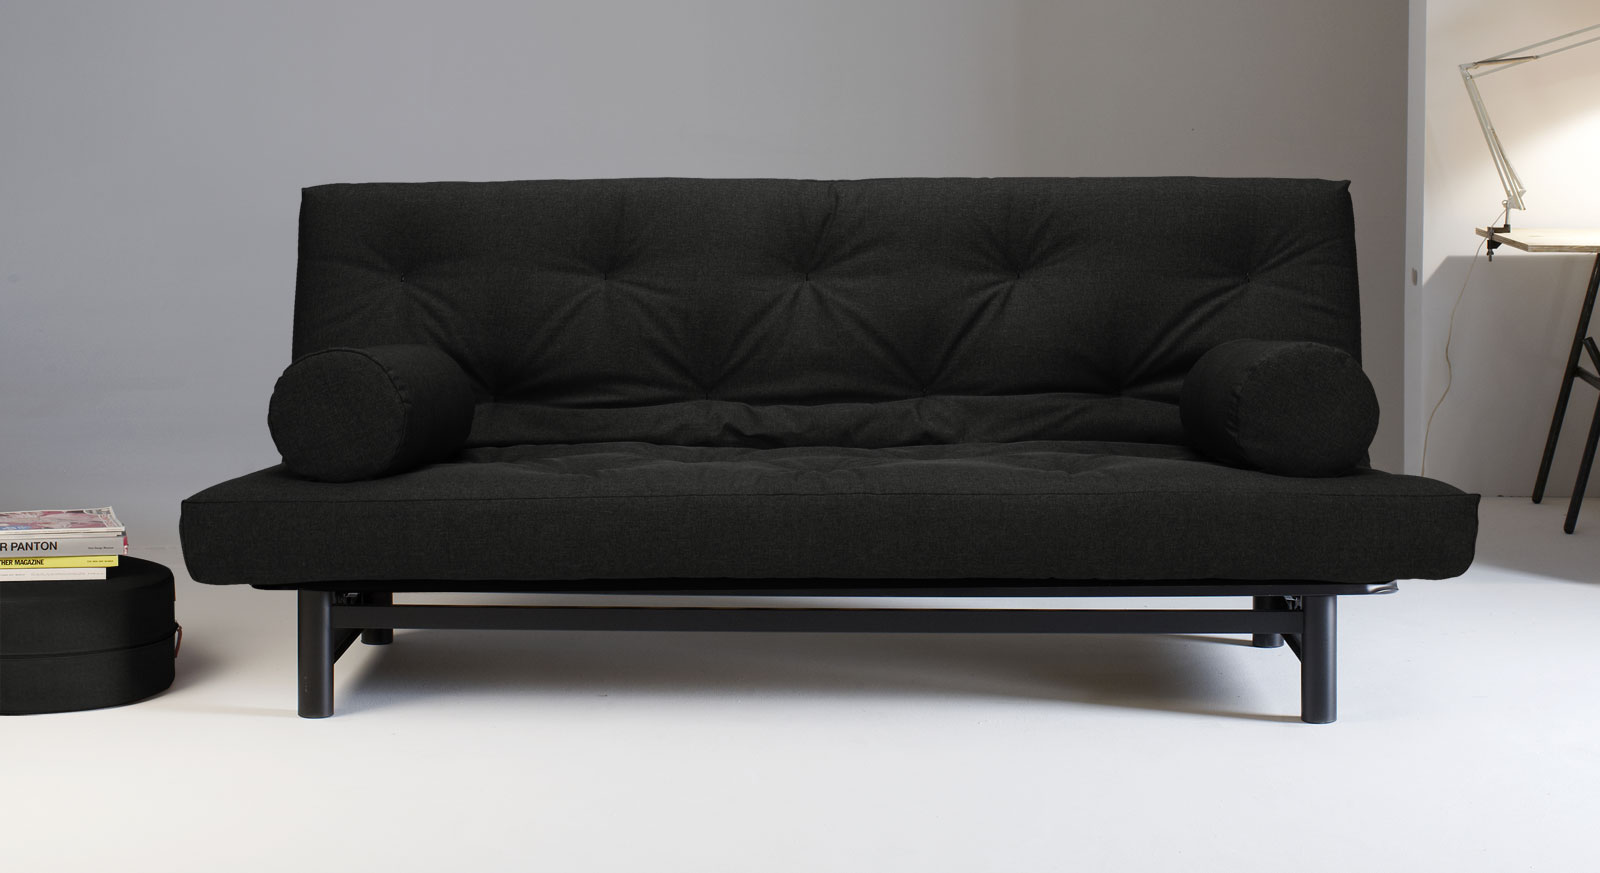 schlafsofa gute matratze beautiful schlafcouch mit futon matratze bestellbar couch del mar. Black Bedroom Furniture Sets. Home Design Ideas